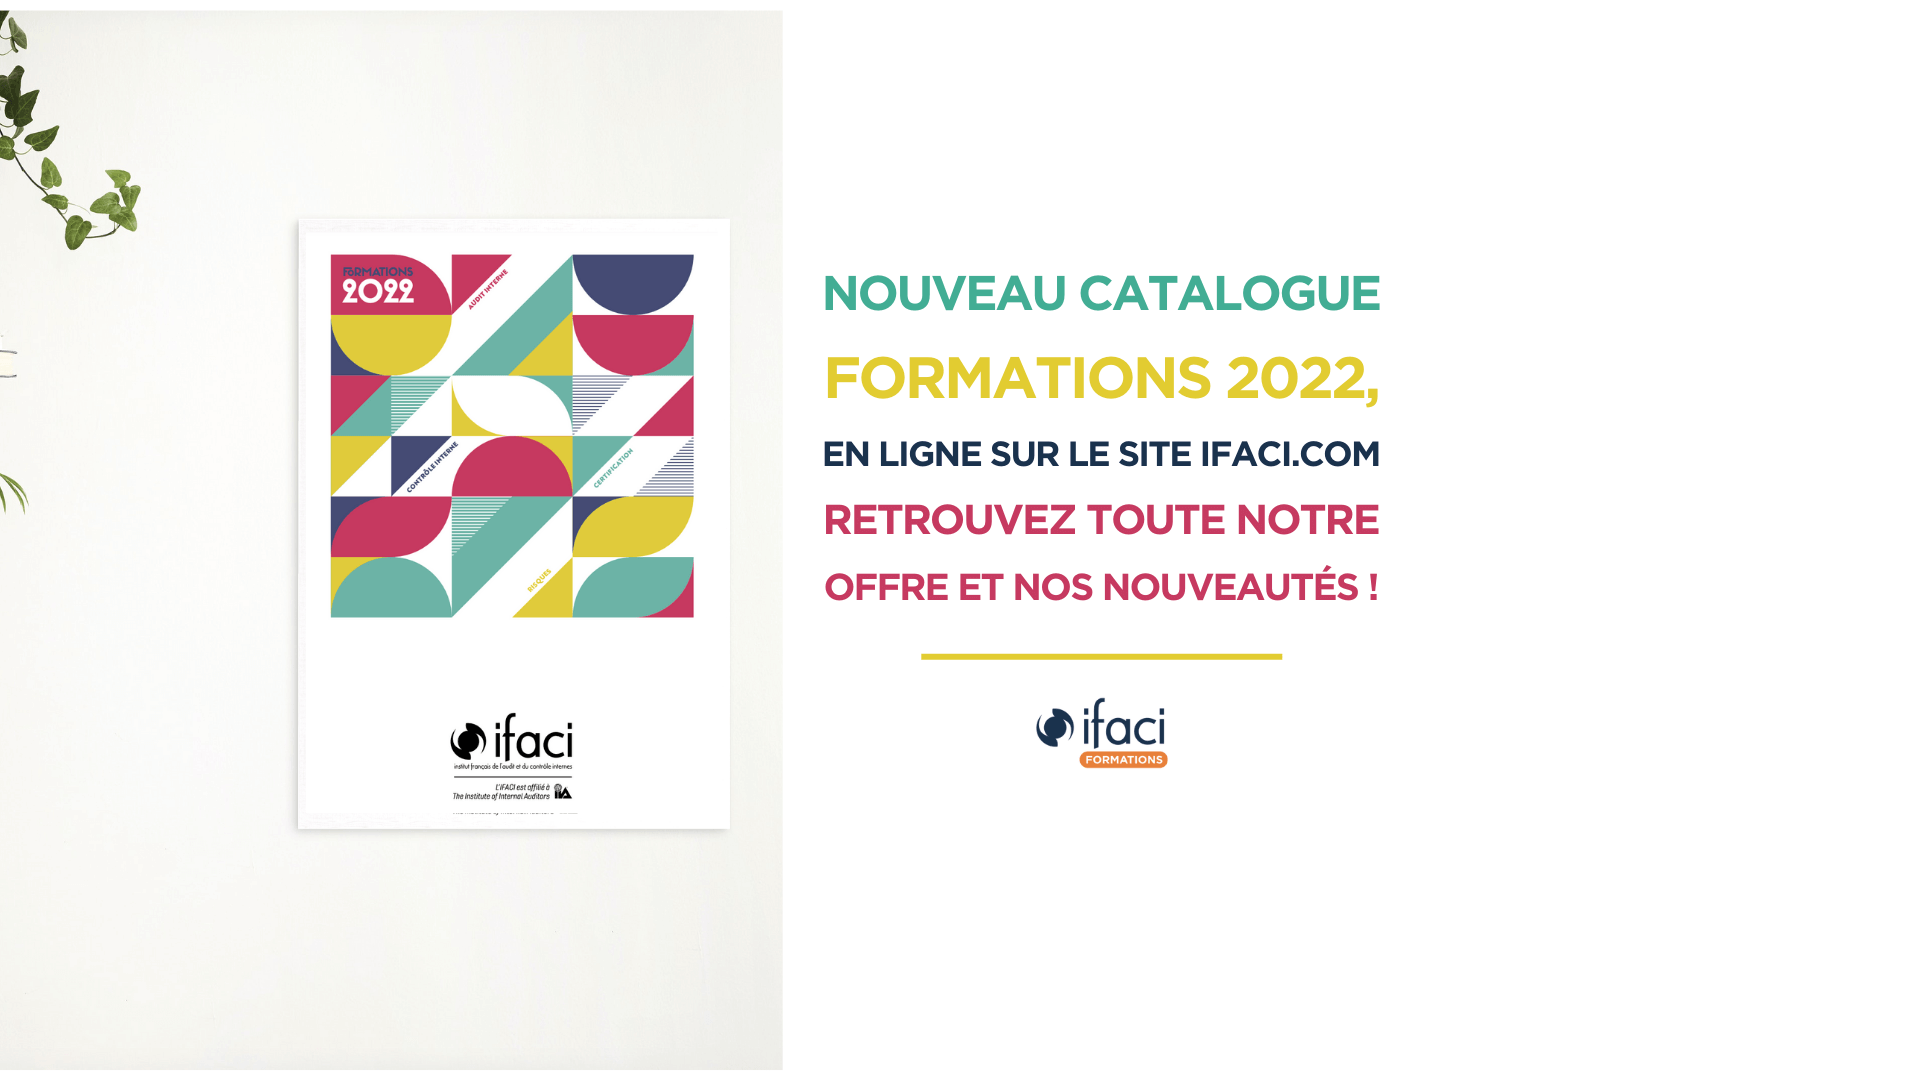 Le catalogue IFACI formations 2022 (6) (1)